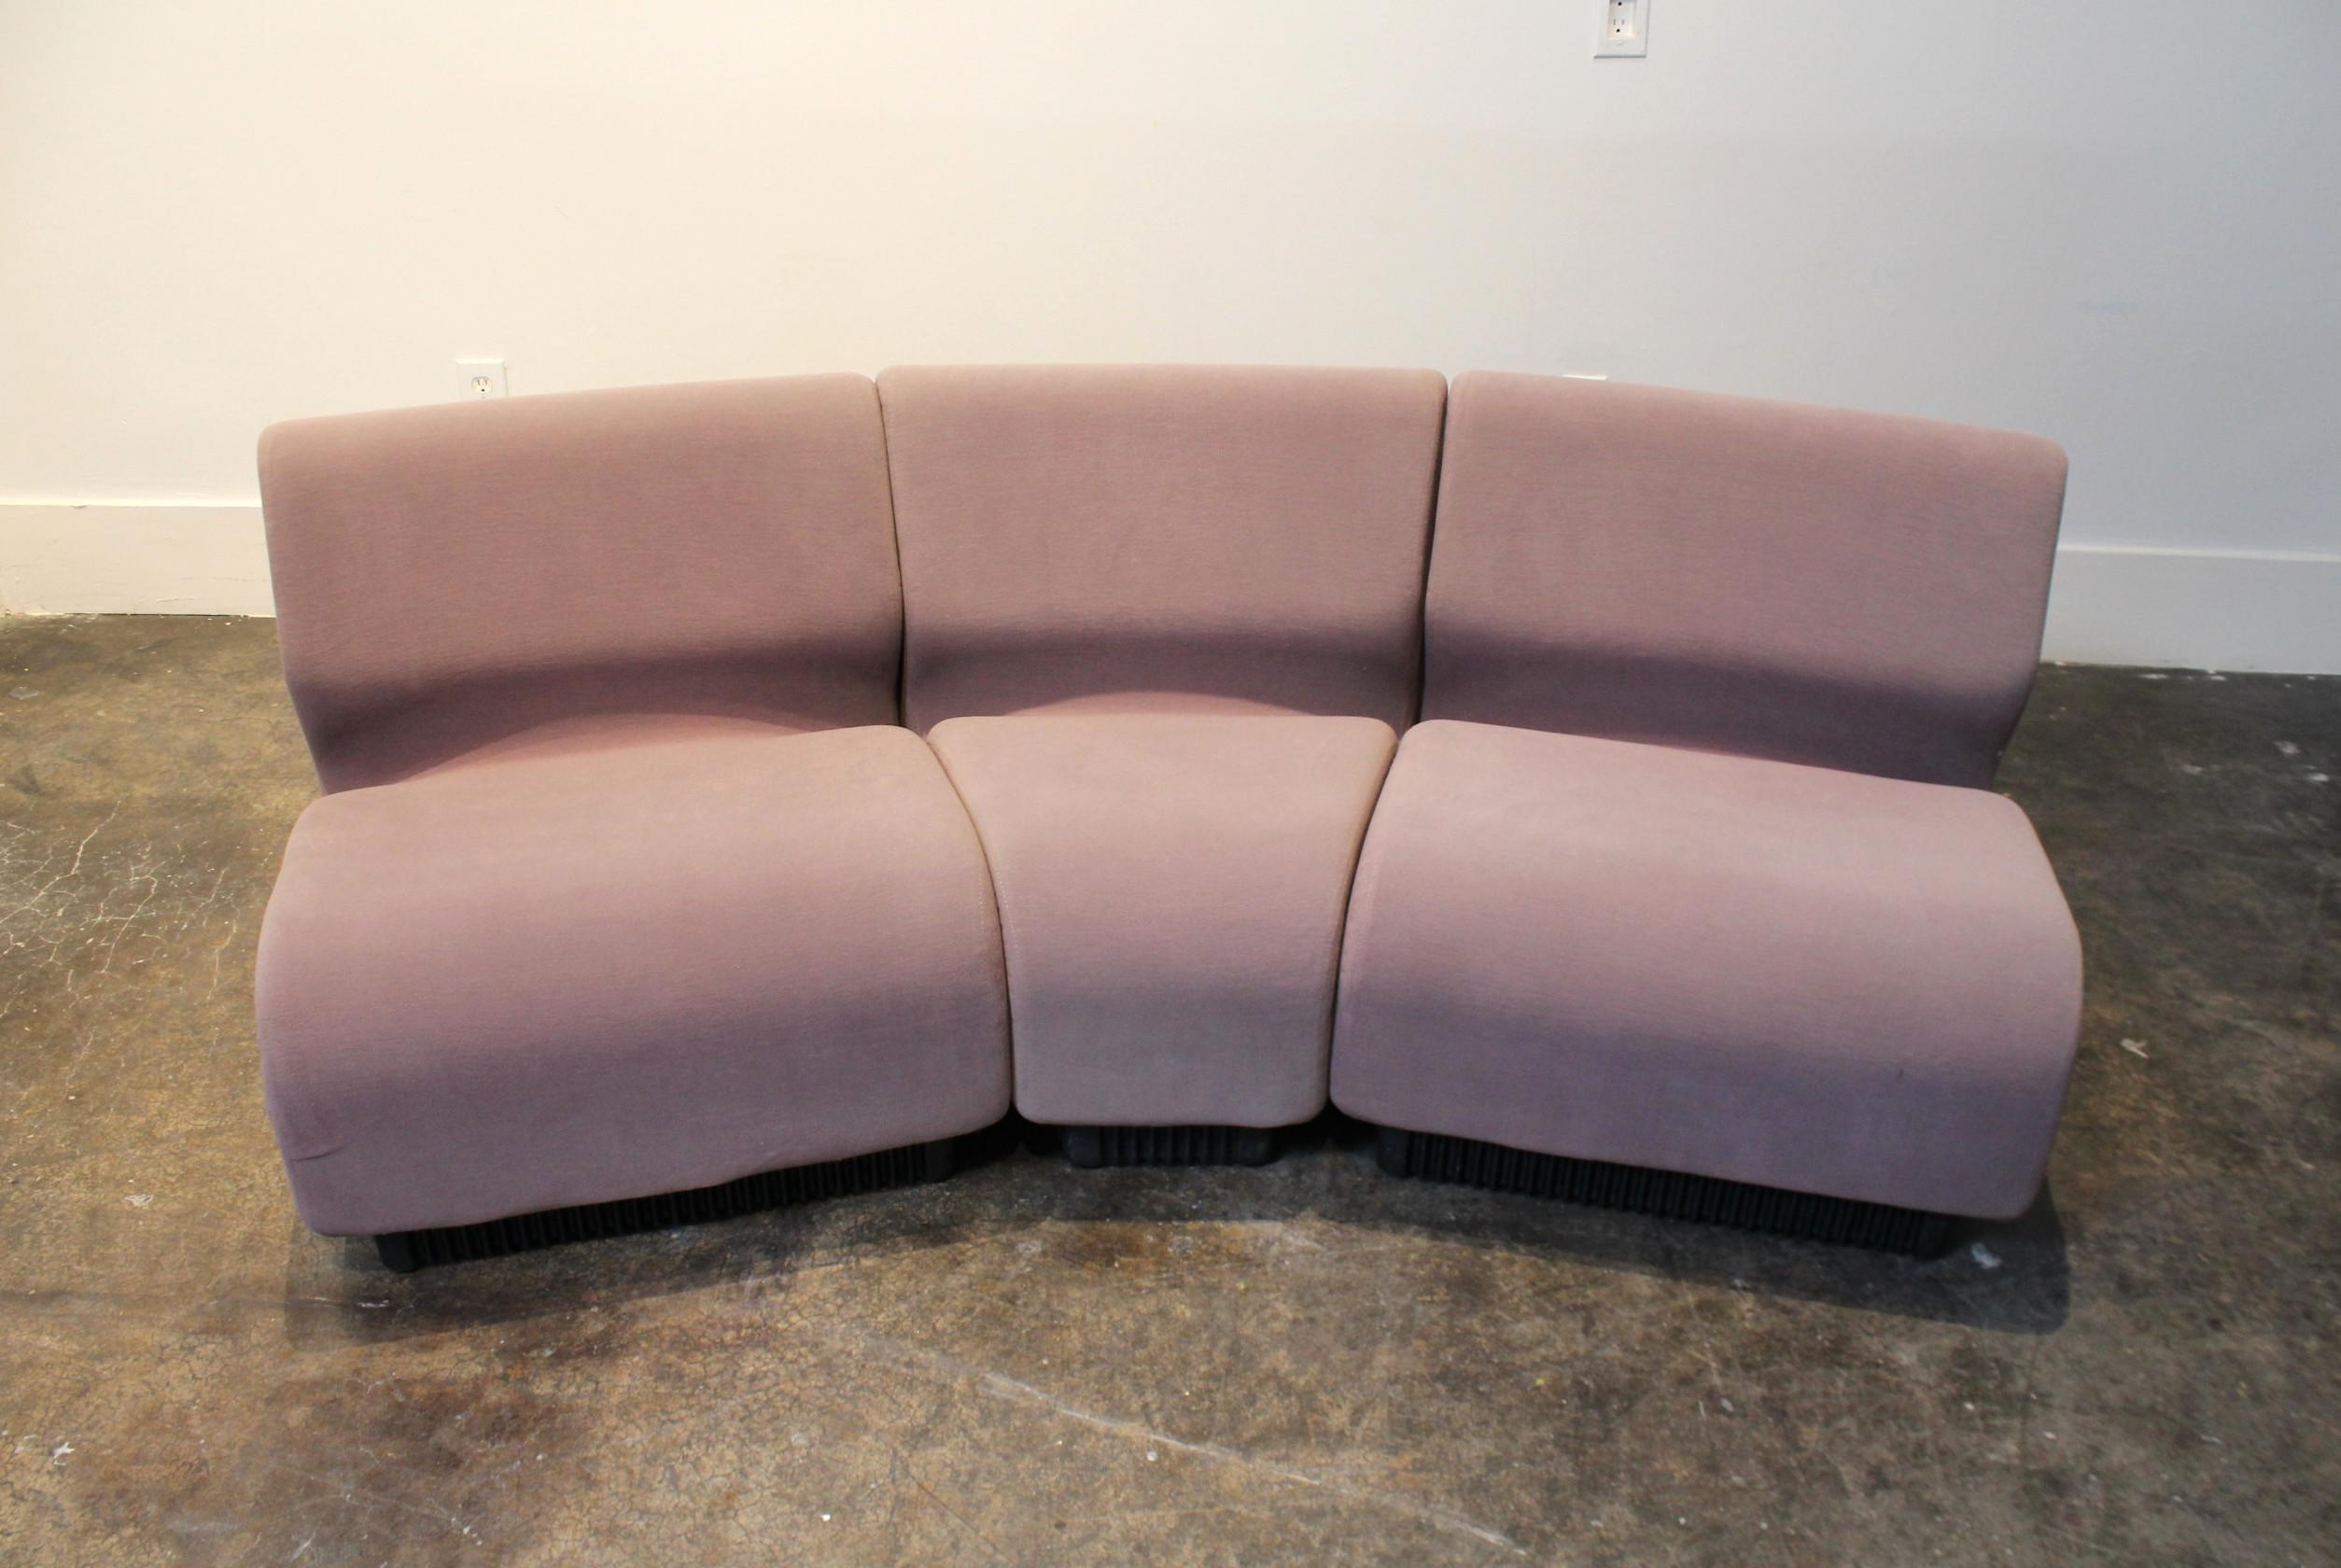 Modular Sofa Set Designed By Don Chadwick In The 1970u0027s And Manufactured By  Herman Miller In